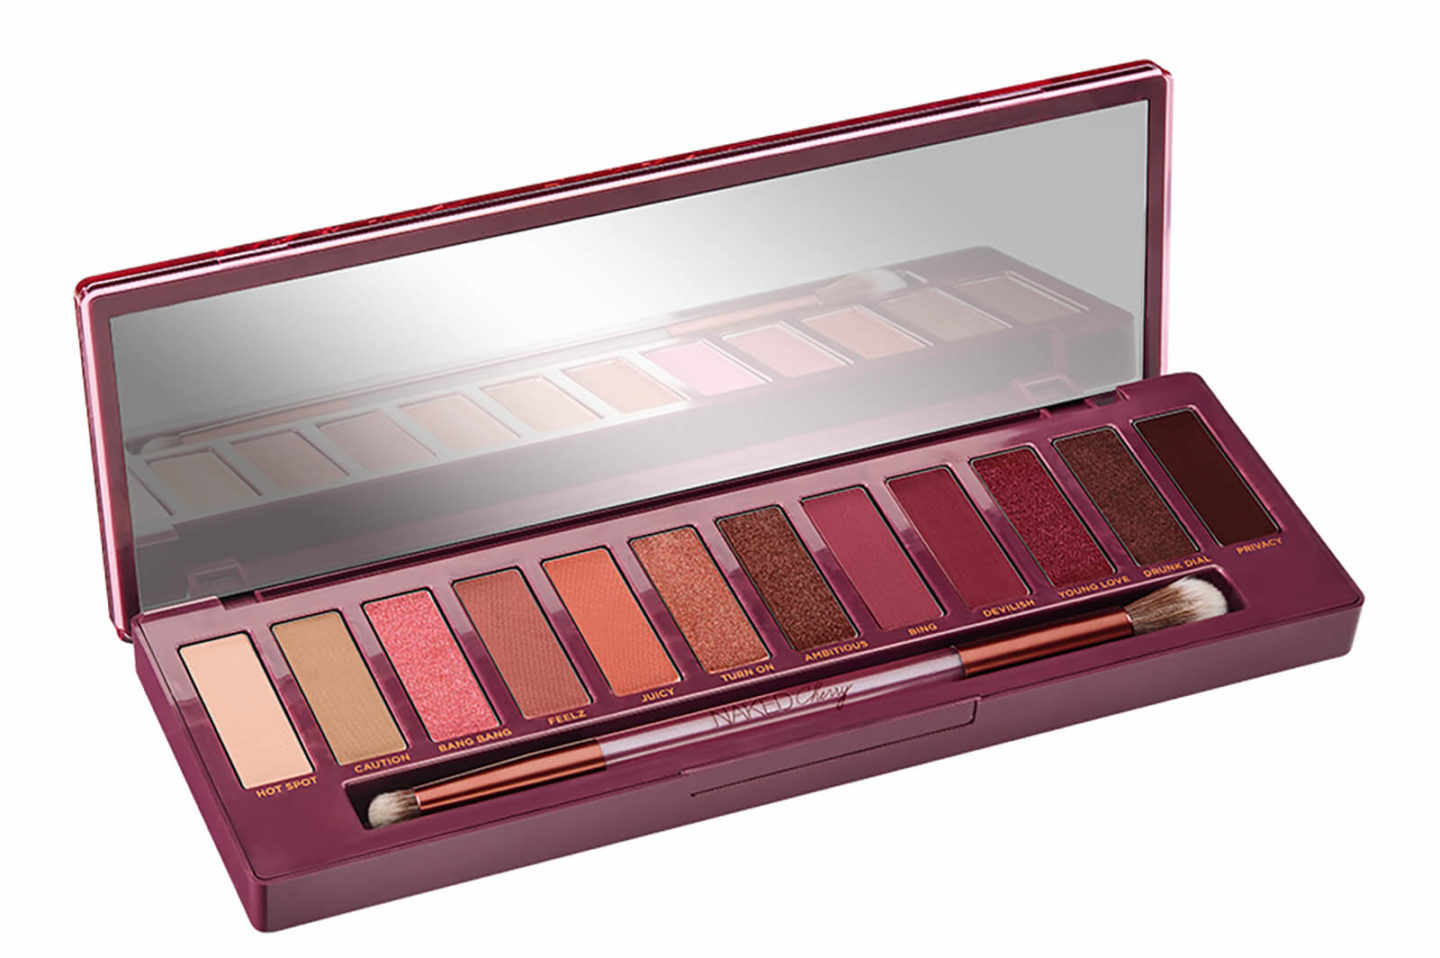 URBAN DECAY Palette Naked Cherry Palette